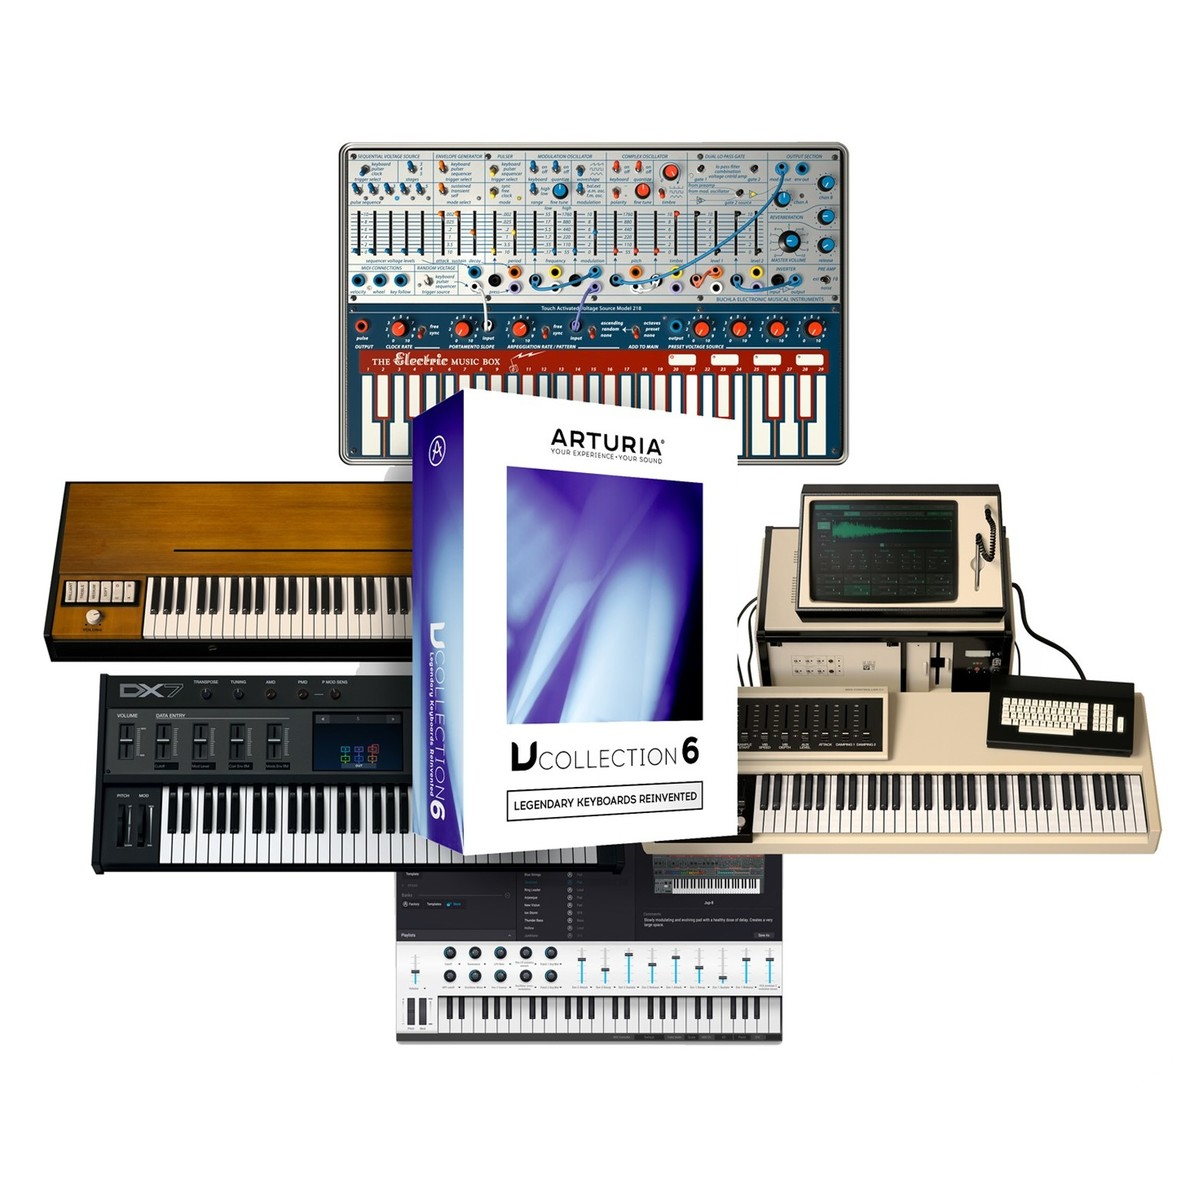 arturia v collection 6 boxed at gear4music. Black Bedroom Furniture Sets. Home Design Ideas